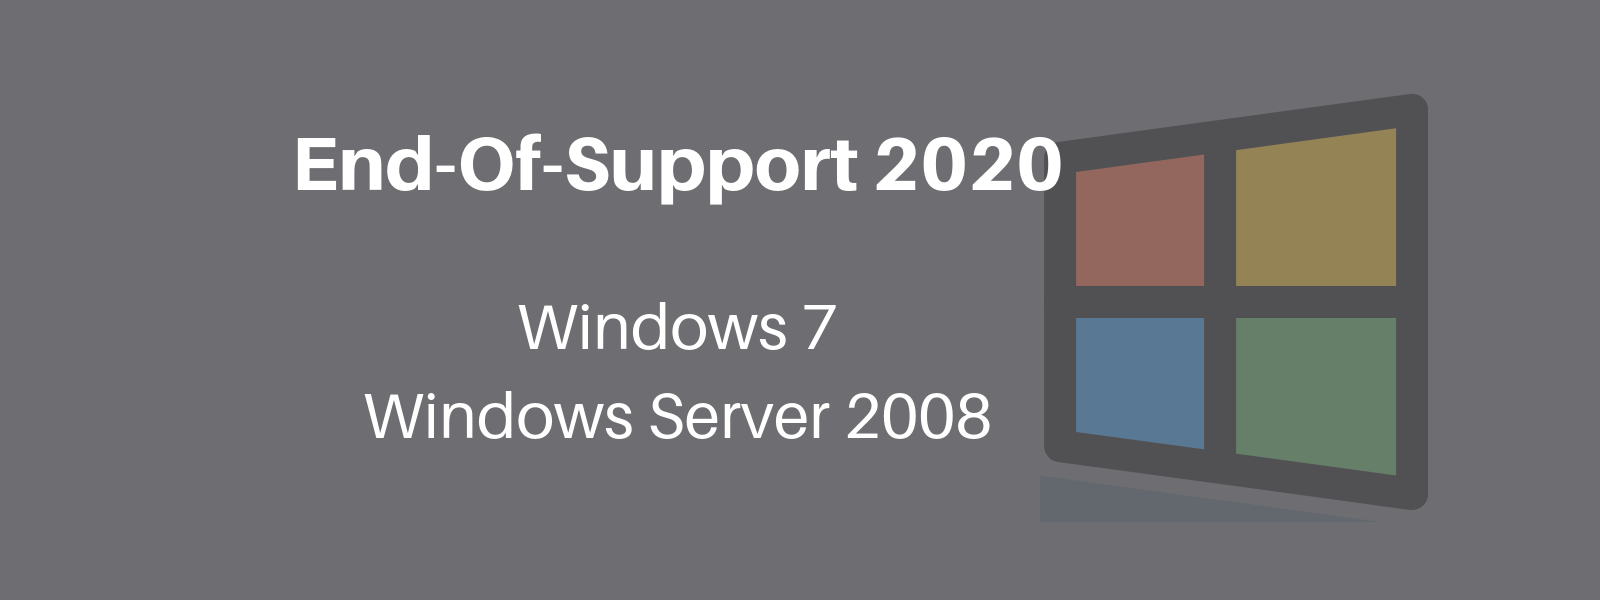 Microsoft-End-of-Support-2020.png